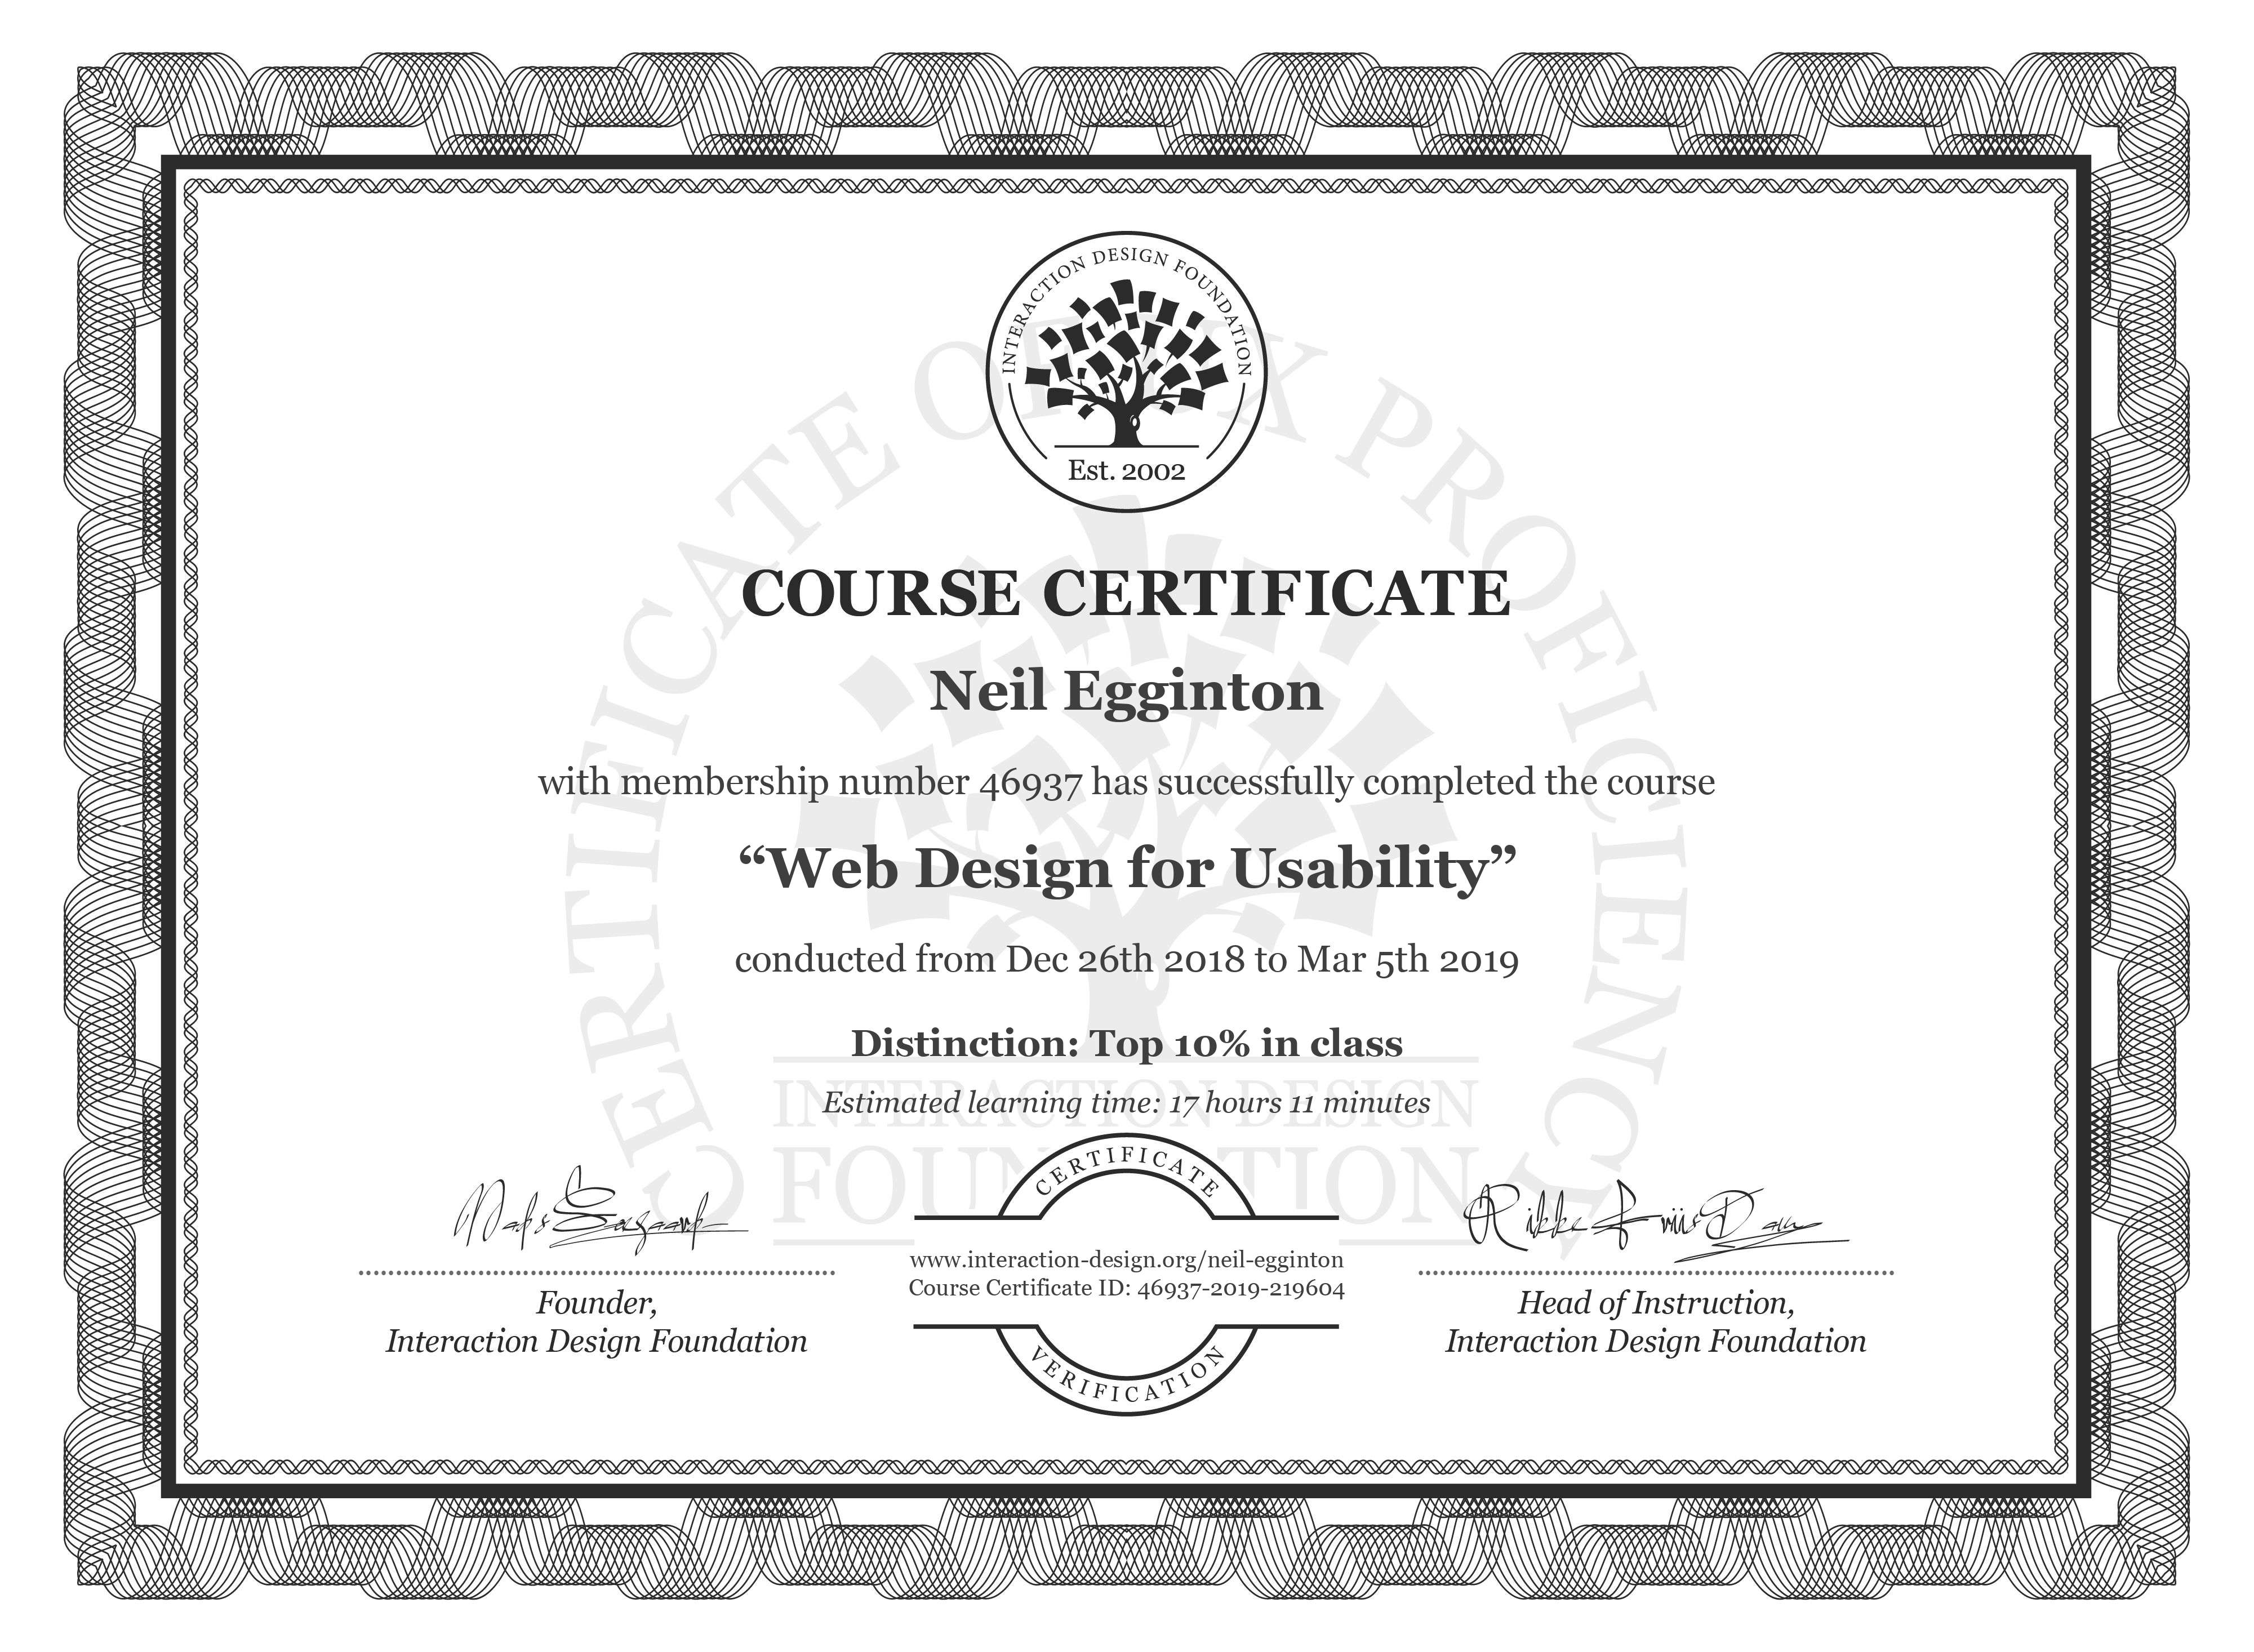 Neil Egginton's Course Certificate: Web Design for Usability